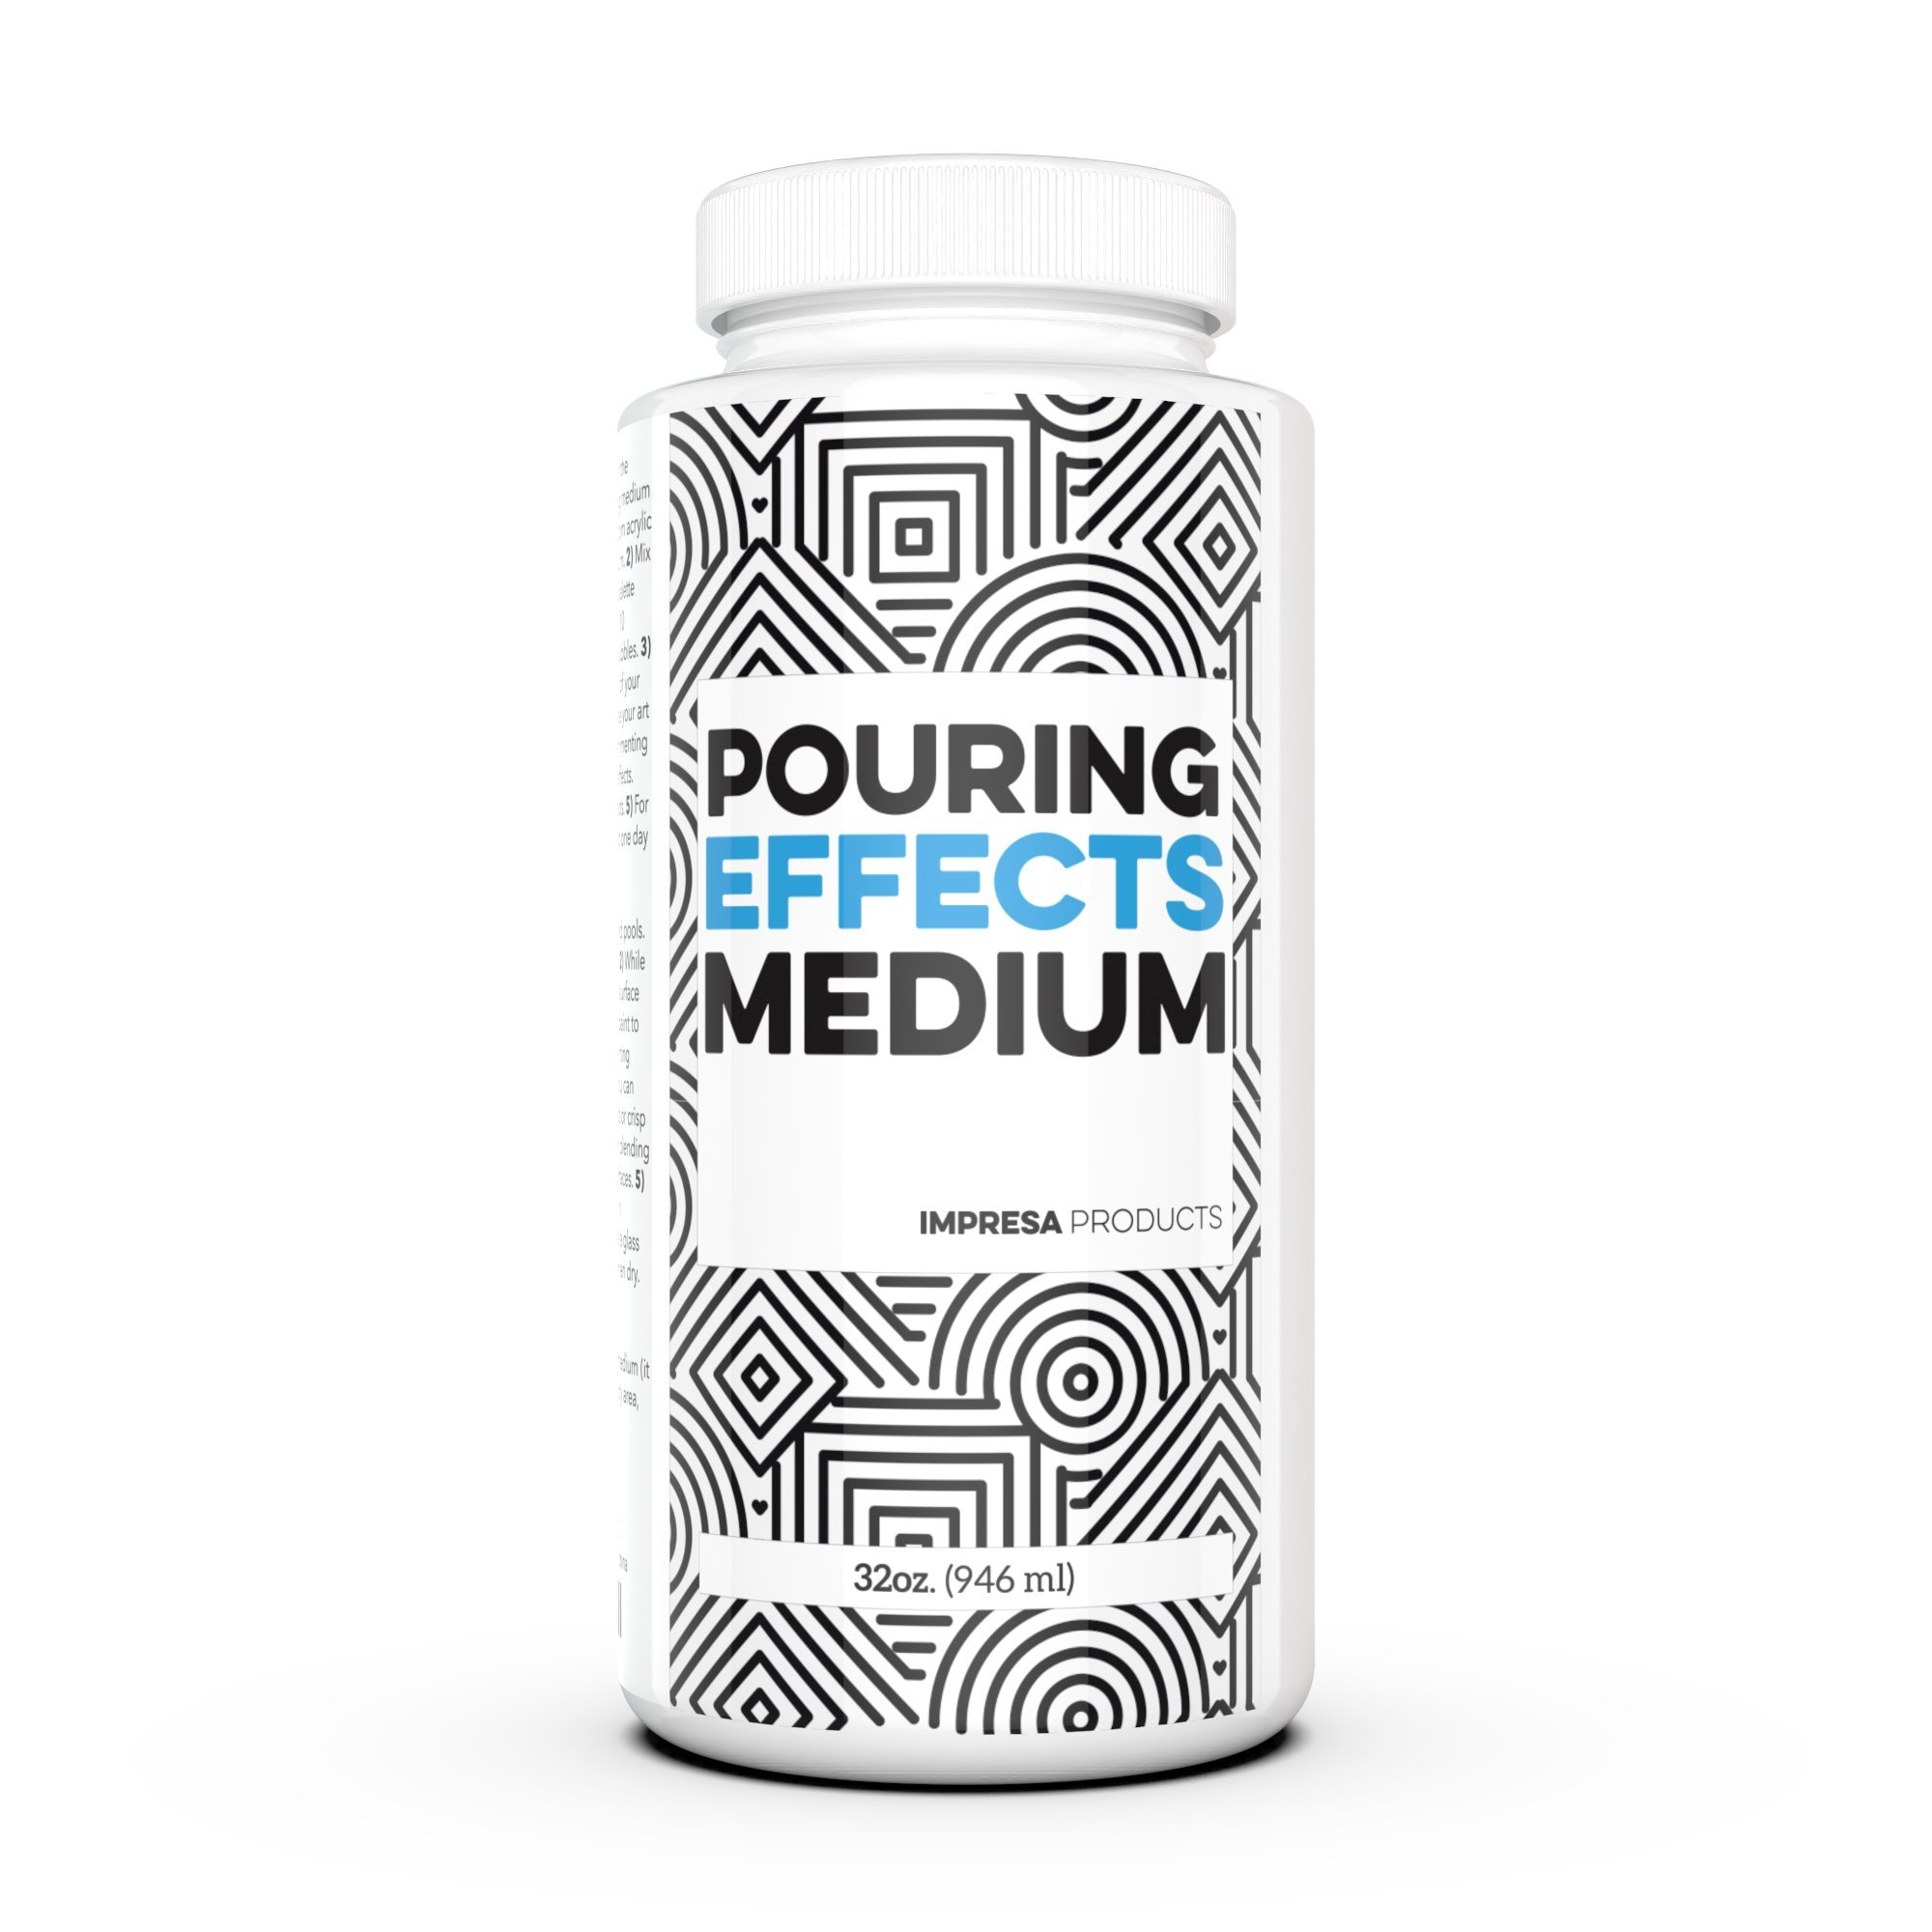 32 oz Acrylic Pouring Medium - Professional Grade - Pouring Effects Medium for Use with Acrylic Paint - Ideal for a Variety of Art Applications - by Impresa Products